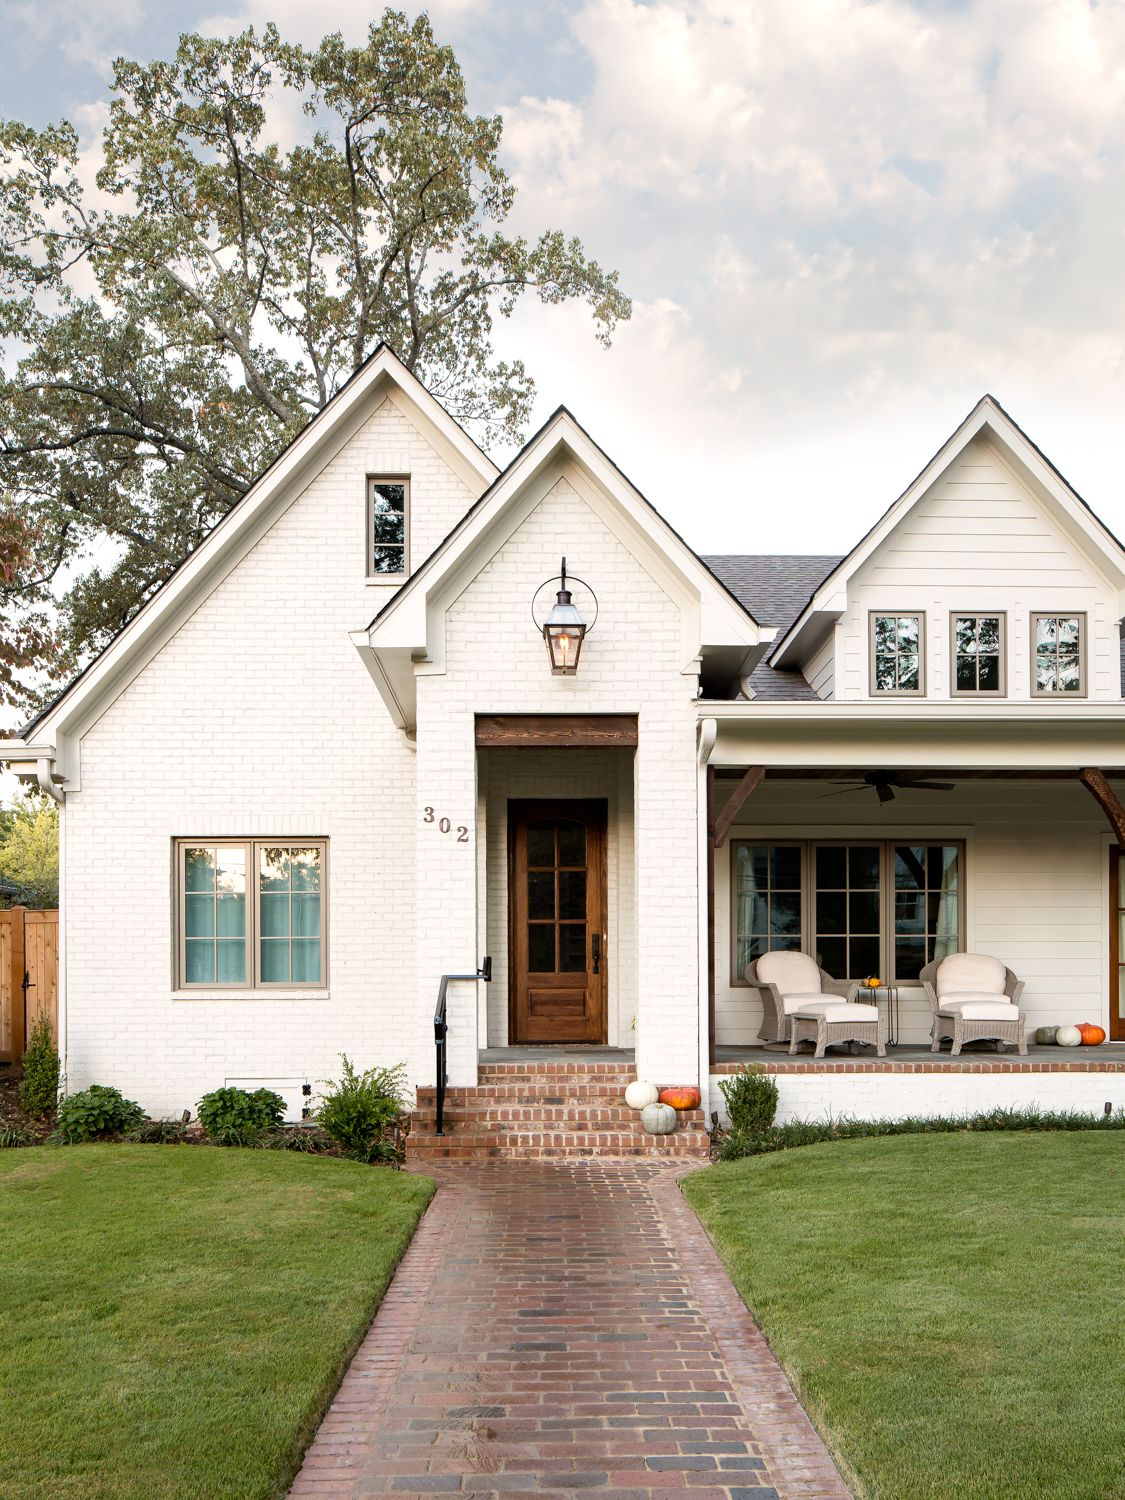 White Brick Home With Wood Front Door Willow Homes Modern Farmhouse Exterior House House Exterior